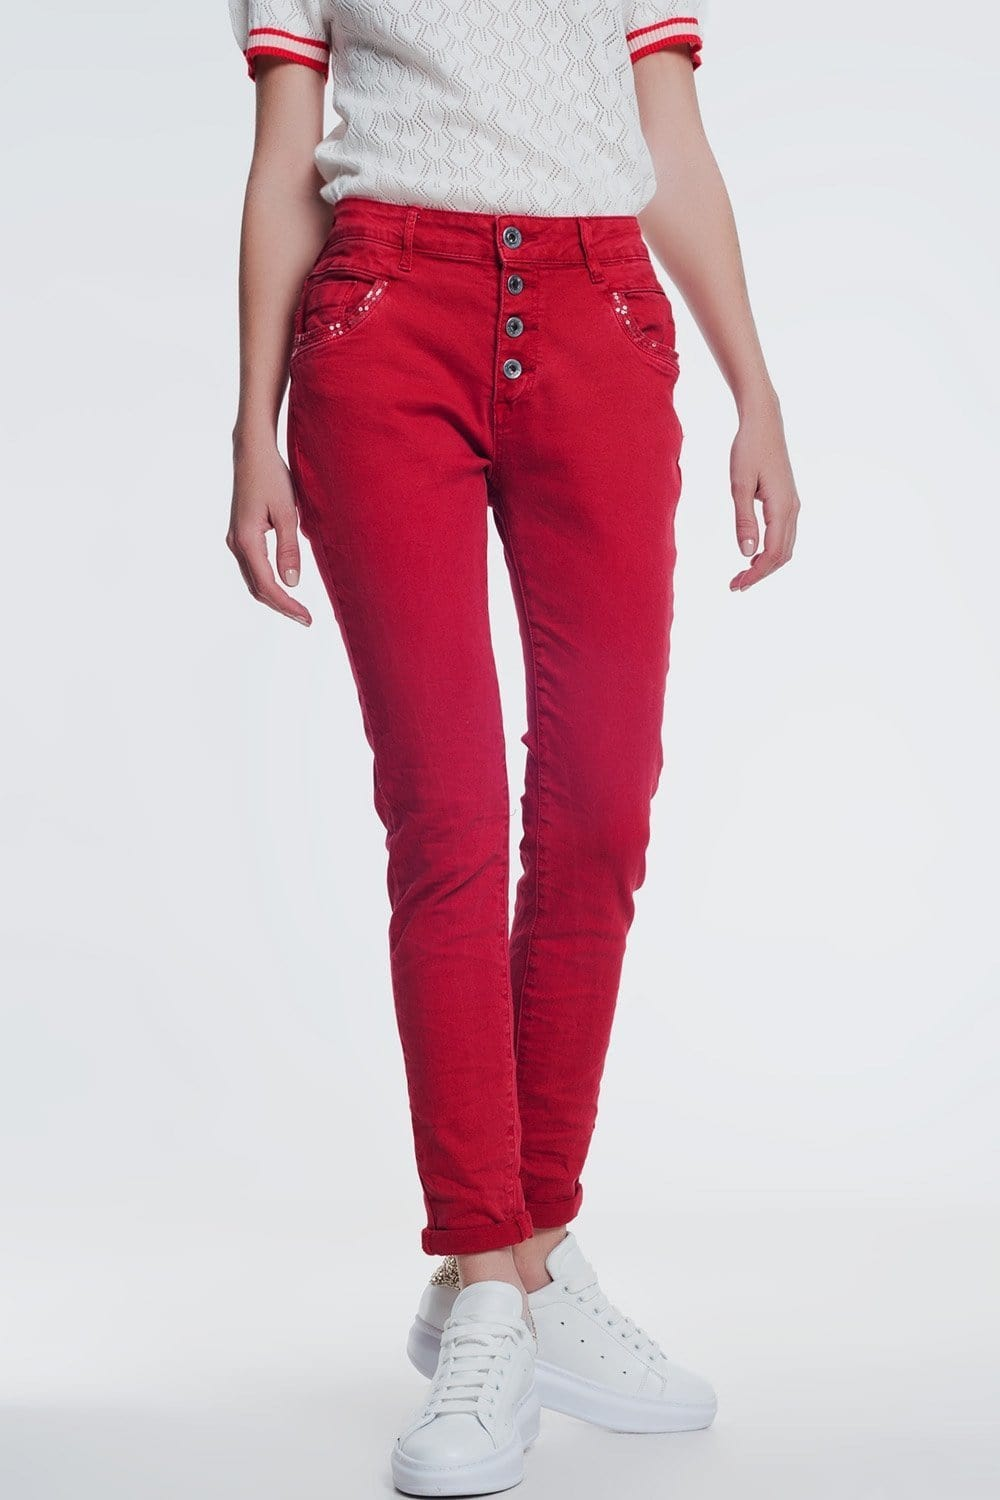 Q2 red boyfriend jeans with button closure